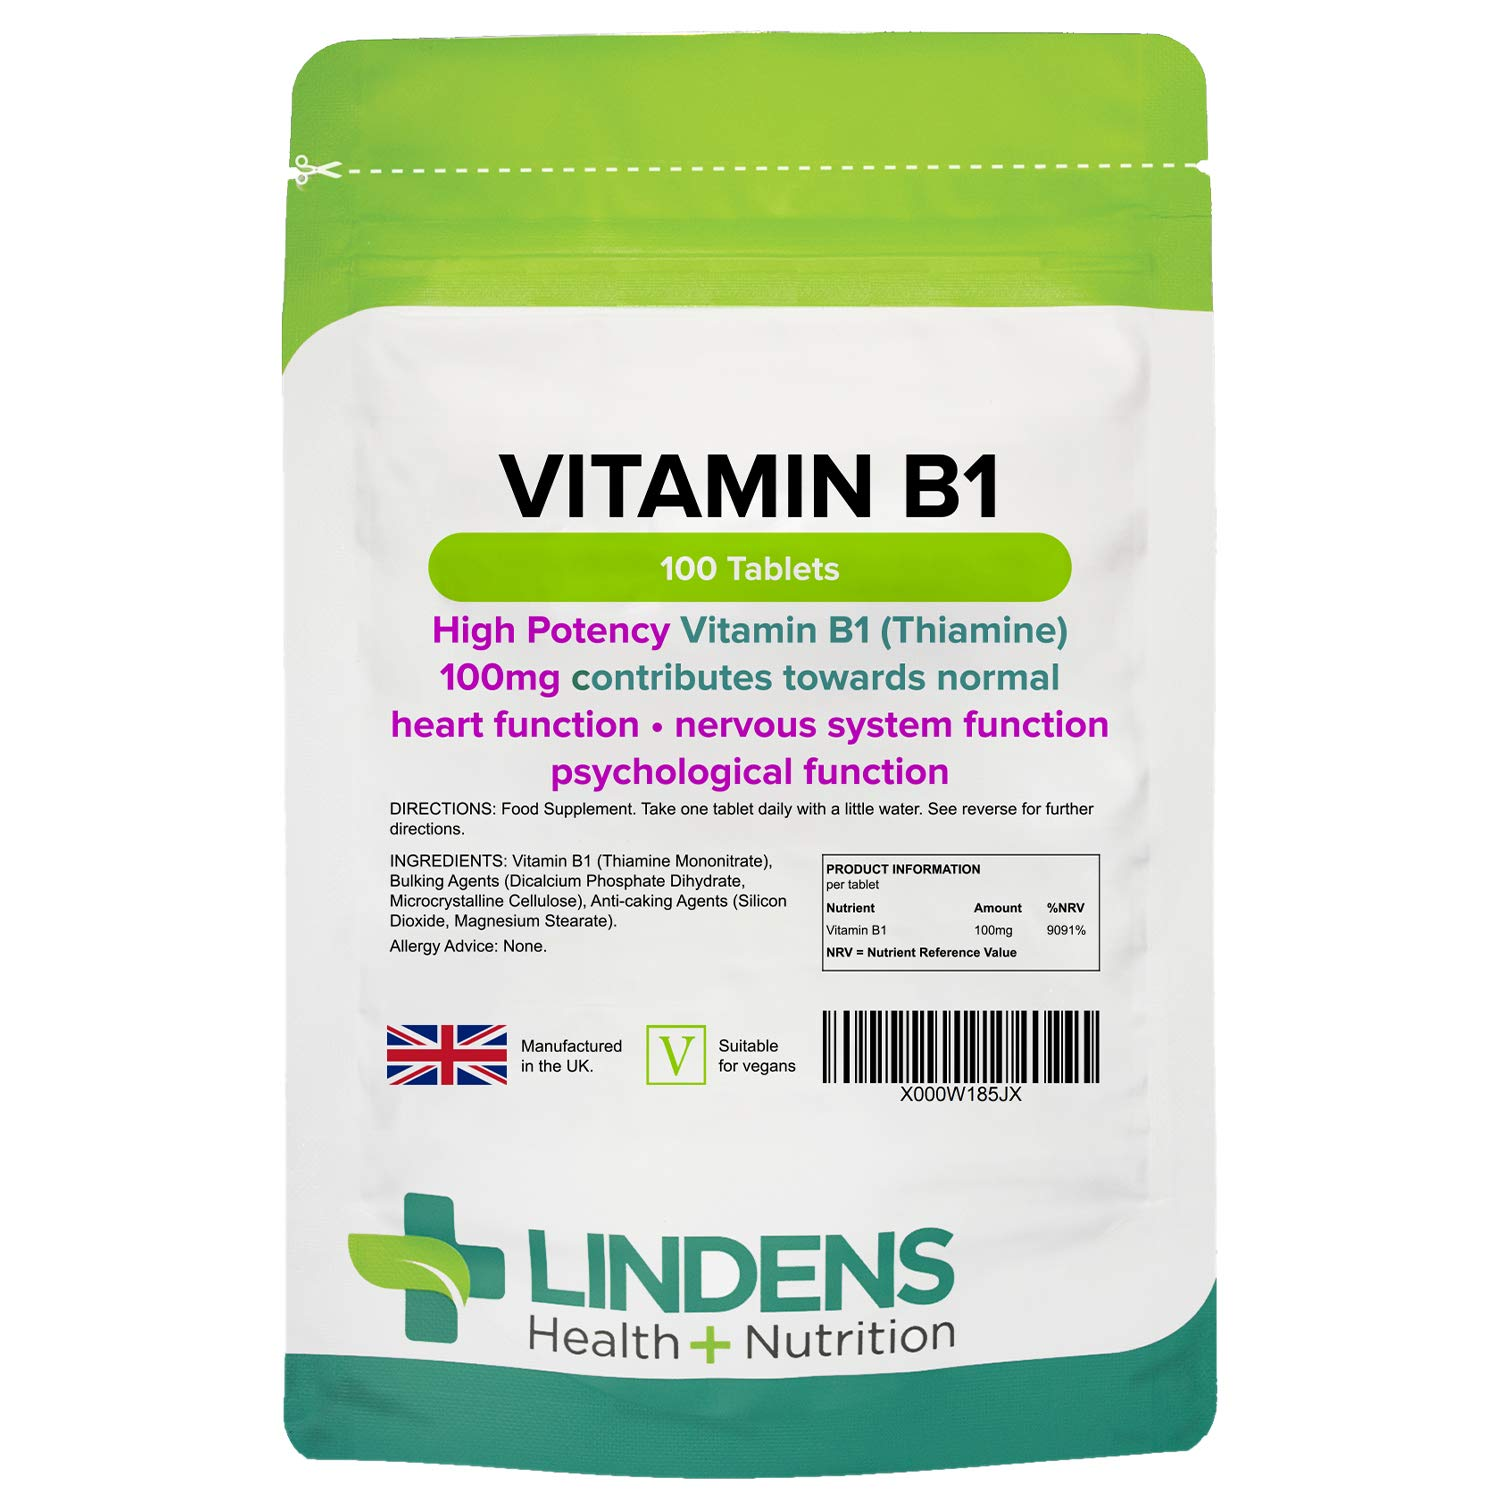 Lindens Vitamin B1 Thiamine Tablets for Heart, Immune and Psychological Function & Energy Release - 100 Tablets